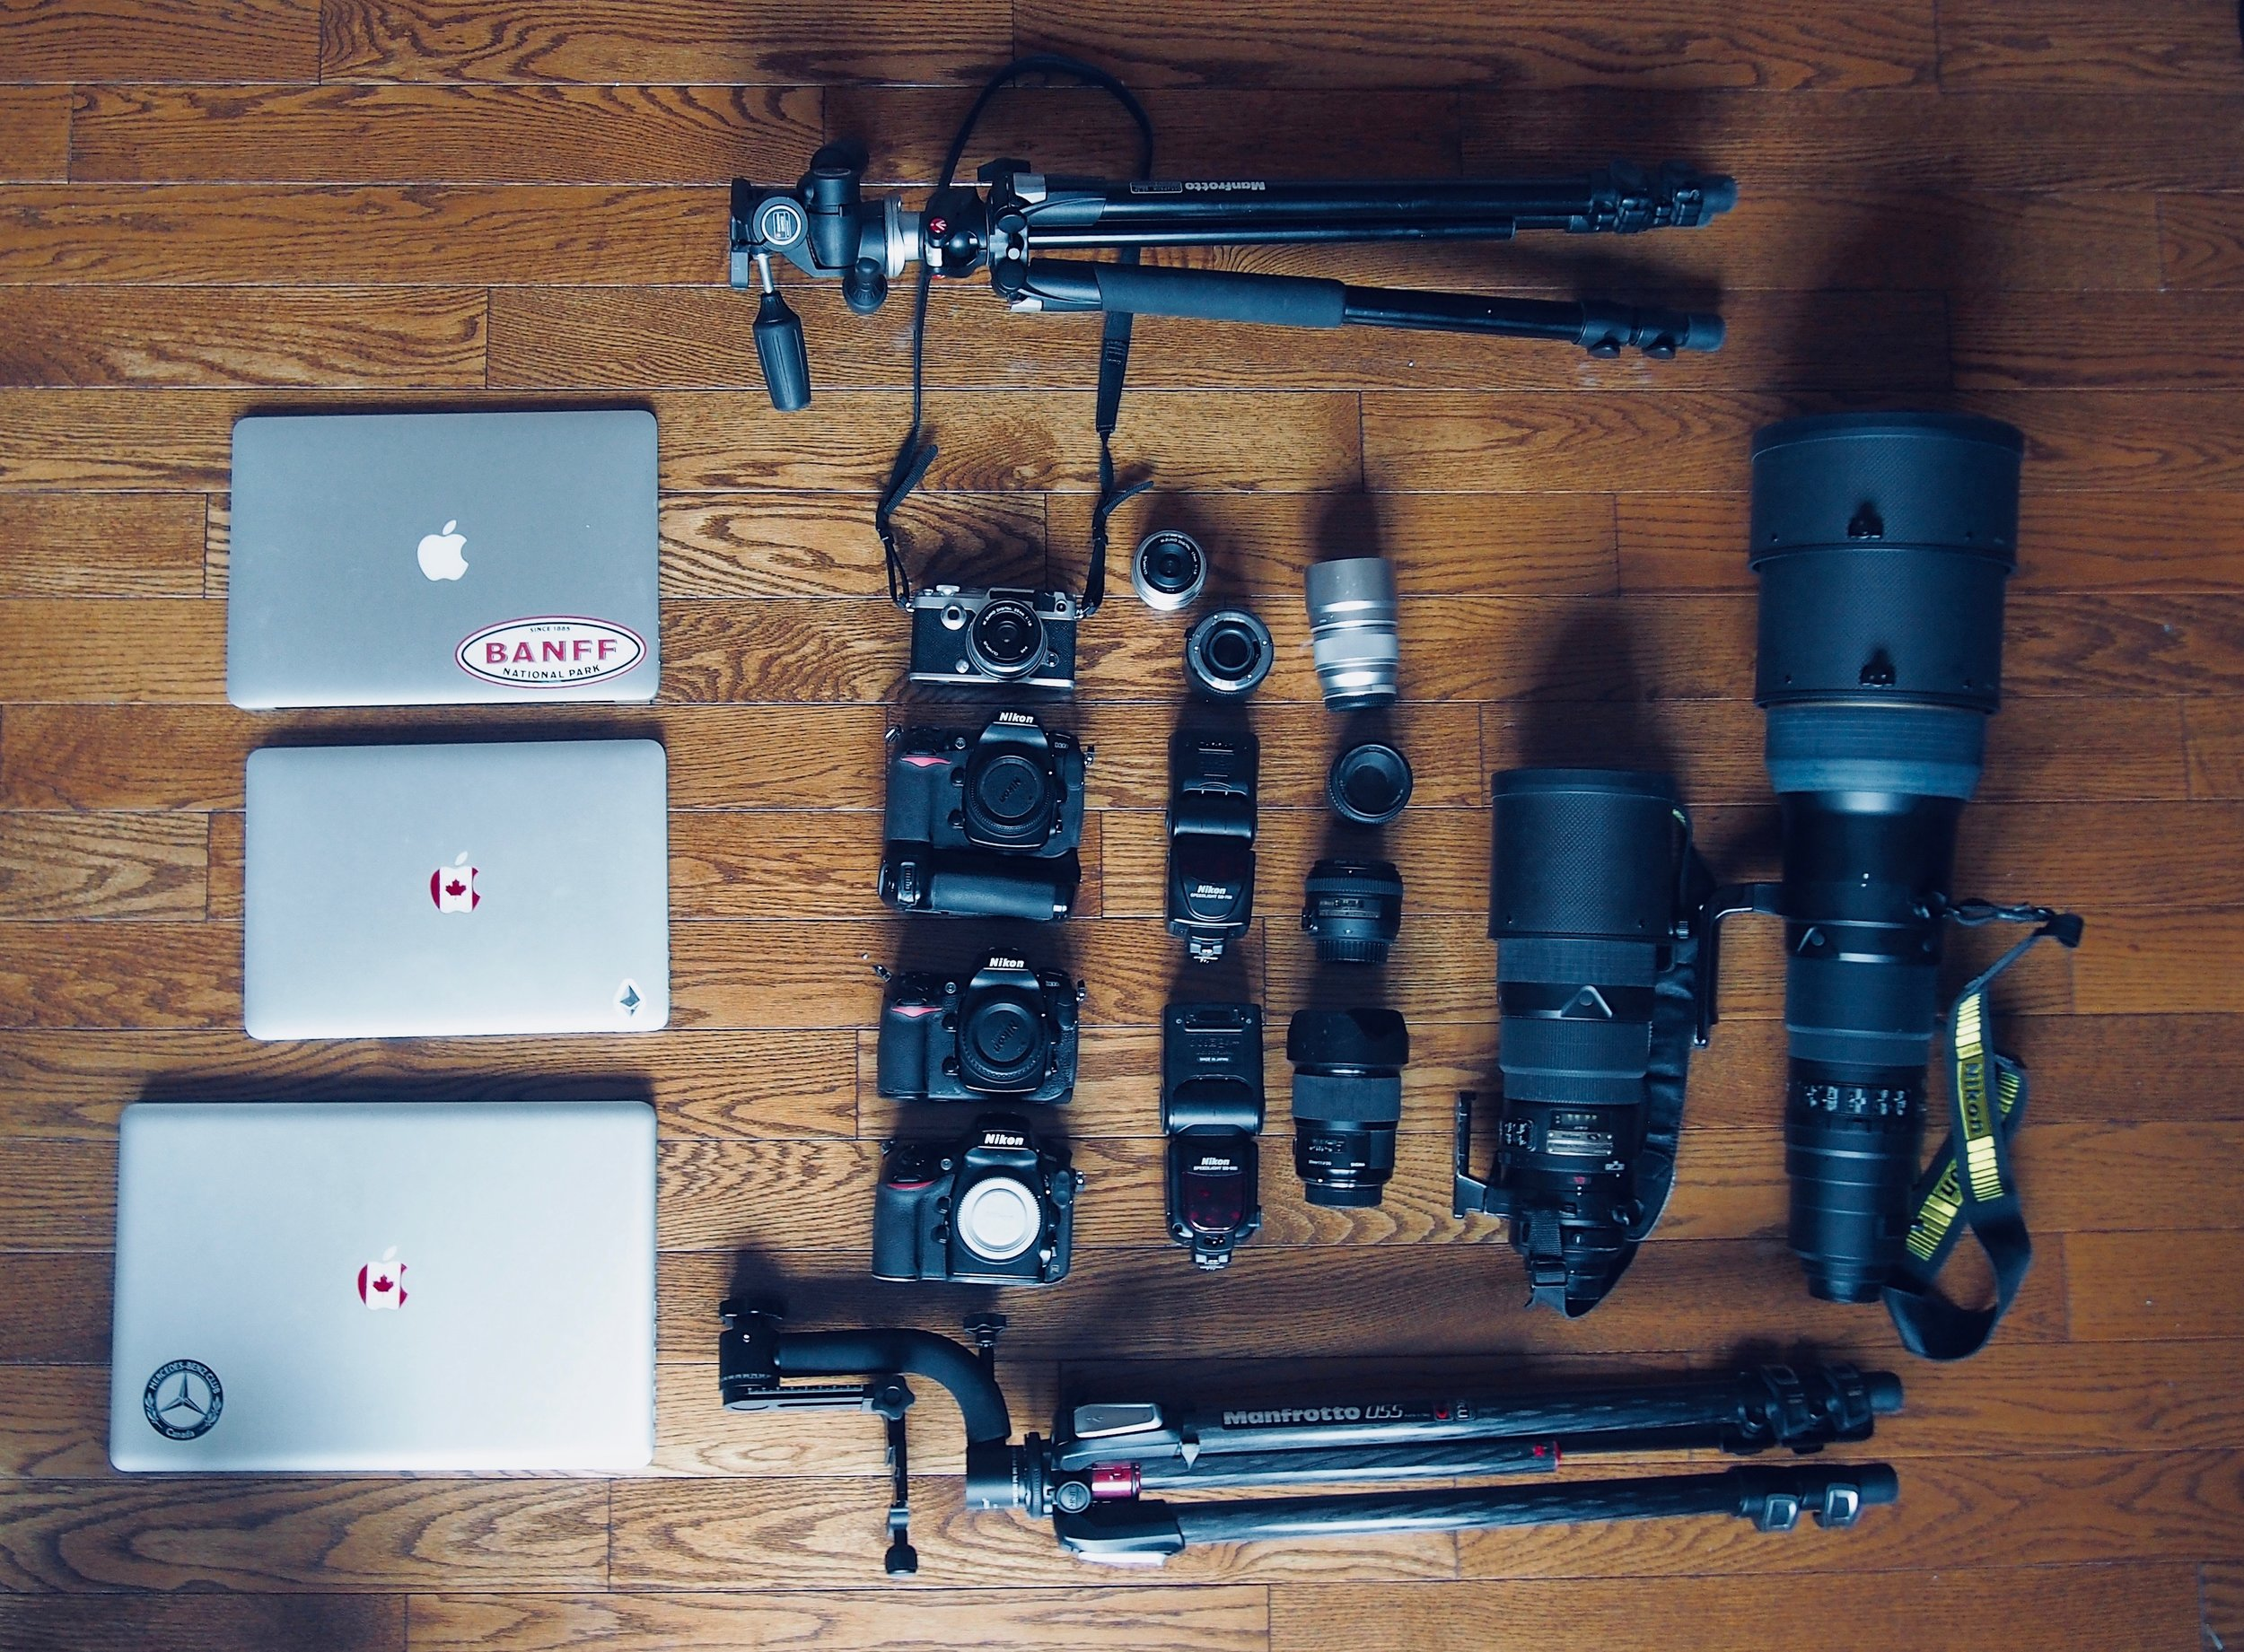 """Things I carried: two laptops, a Pen-F, a D300, a D300s, a D800E, a 20mm f/1.4 Sigma Art, a 50mm f/1.4 AF-S G, a 50mm f/1.8 AF-D, a 300mm f/2.8 VR, a 600mm f/4 VRII nano-crystal, two manfrotto tripod, a sb-900 and a sb-700 (which I came to hate), a Olympus Pen-F with a 75mm f/1.8 Zuiko and 17mm f/1.8, a 17"""" Macbook Pro 2011 quad-core, a late 2012 13"""" Macbook pro retina. The Macbook Air belongs to my sister and is on this picture only because it looked cool at that time haha."""